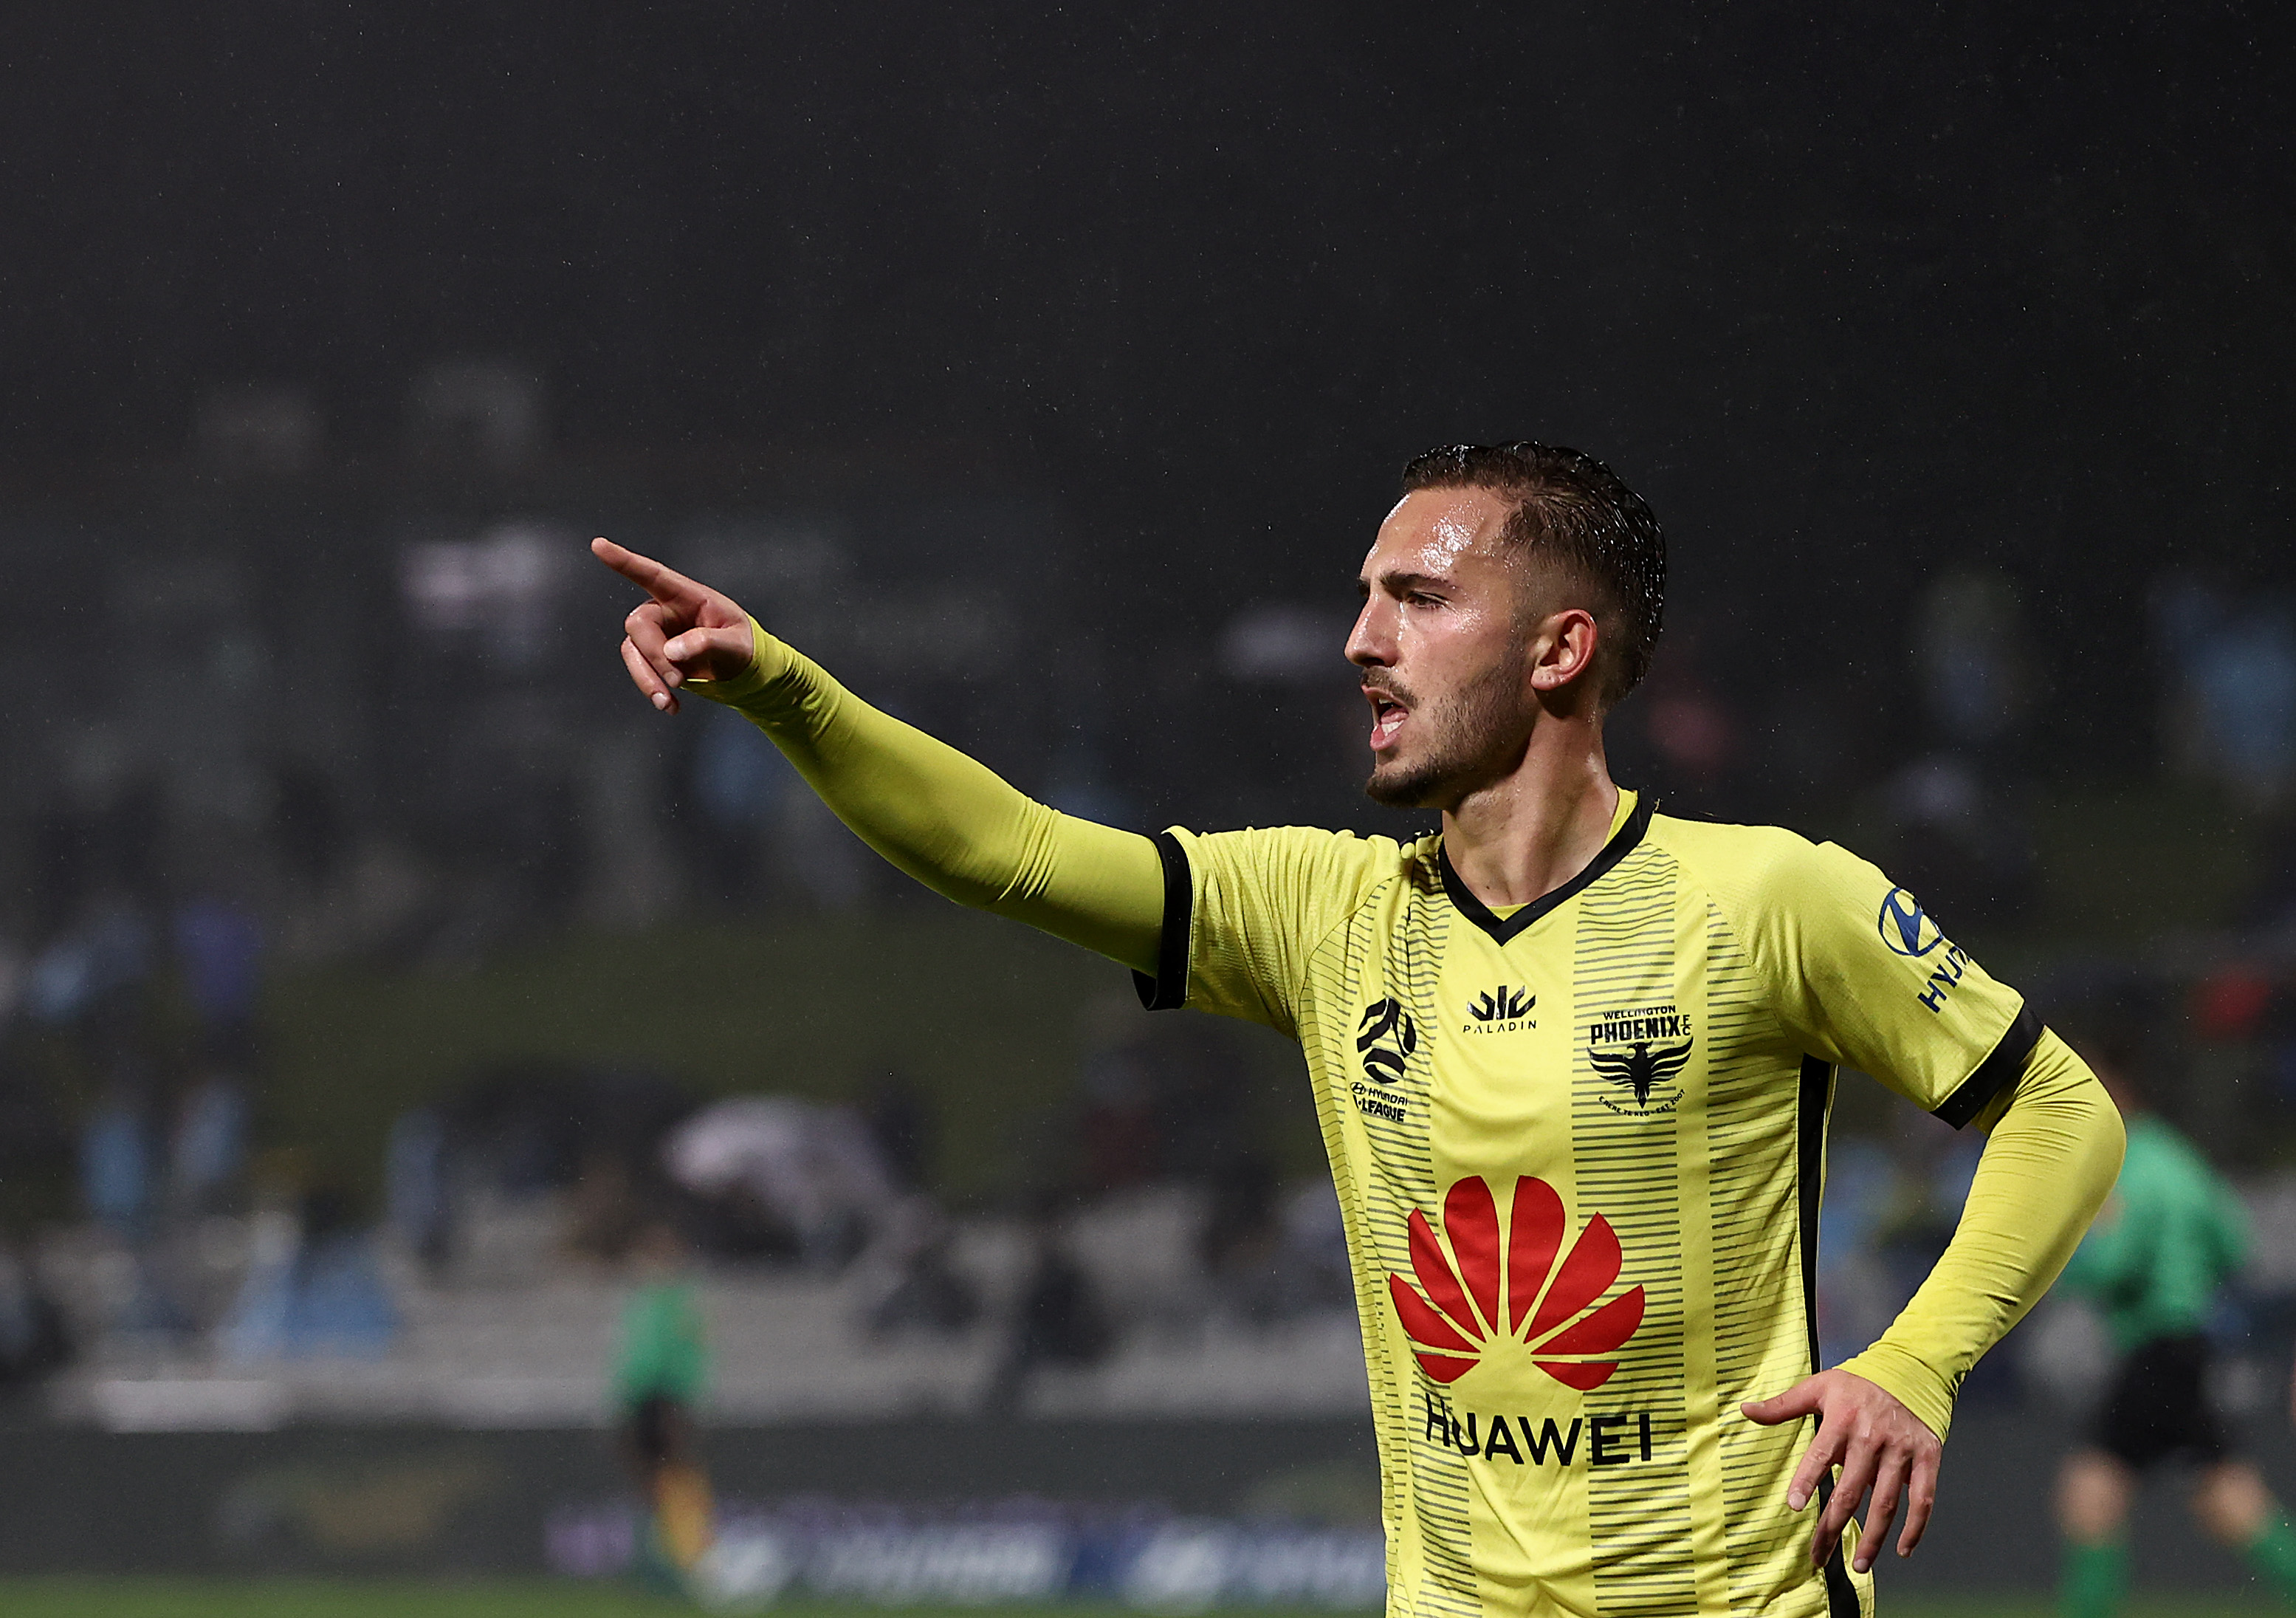 Piscopo is coming off a breakout season with Wellington in the A-League